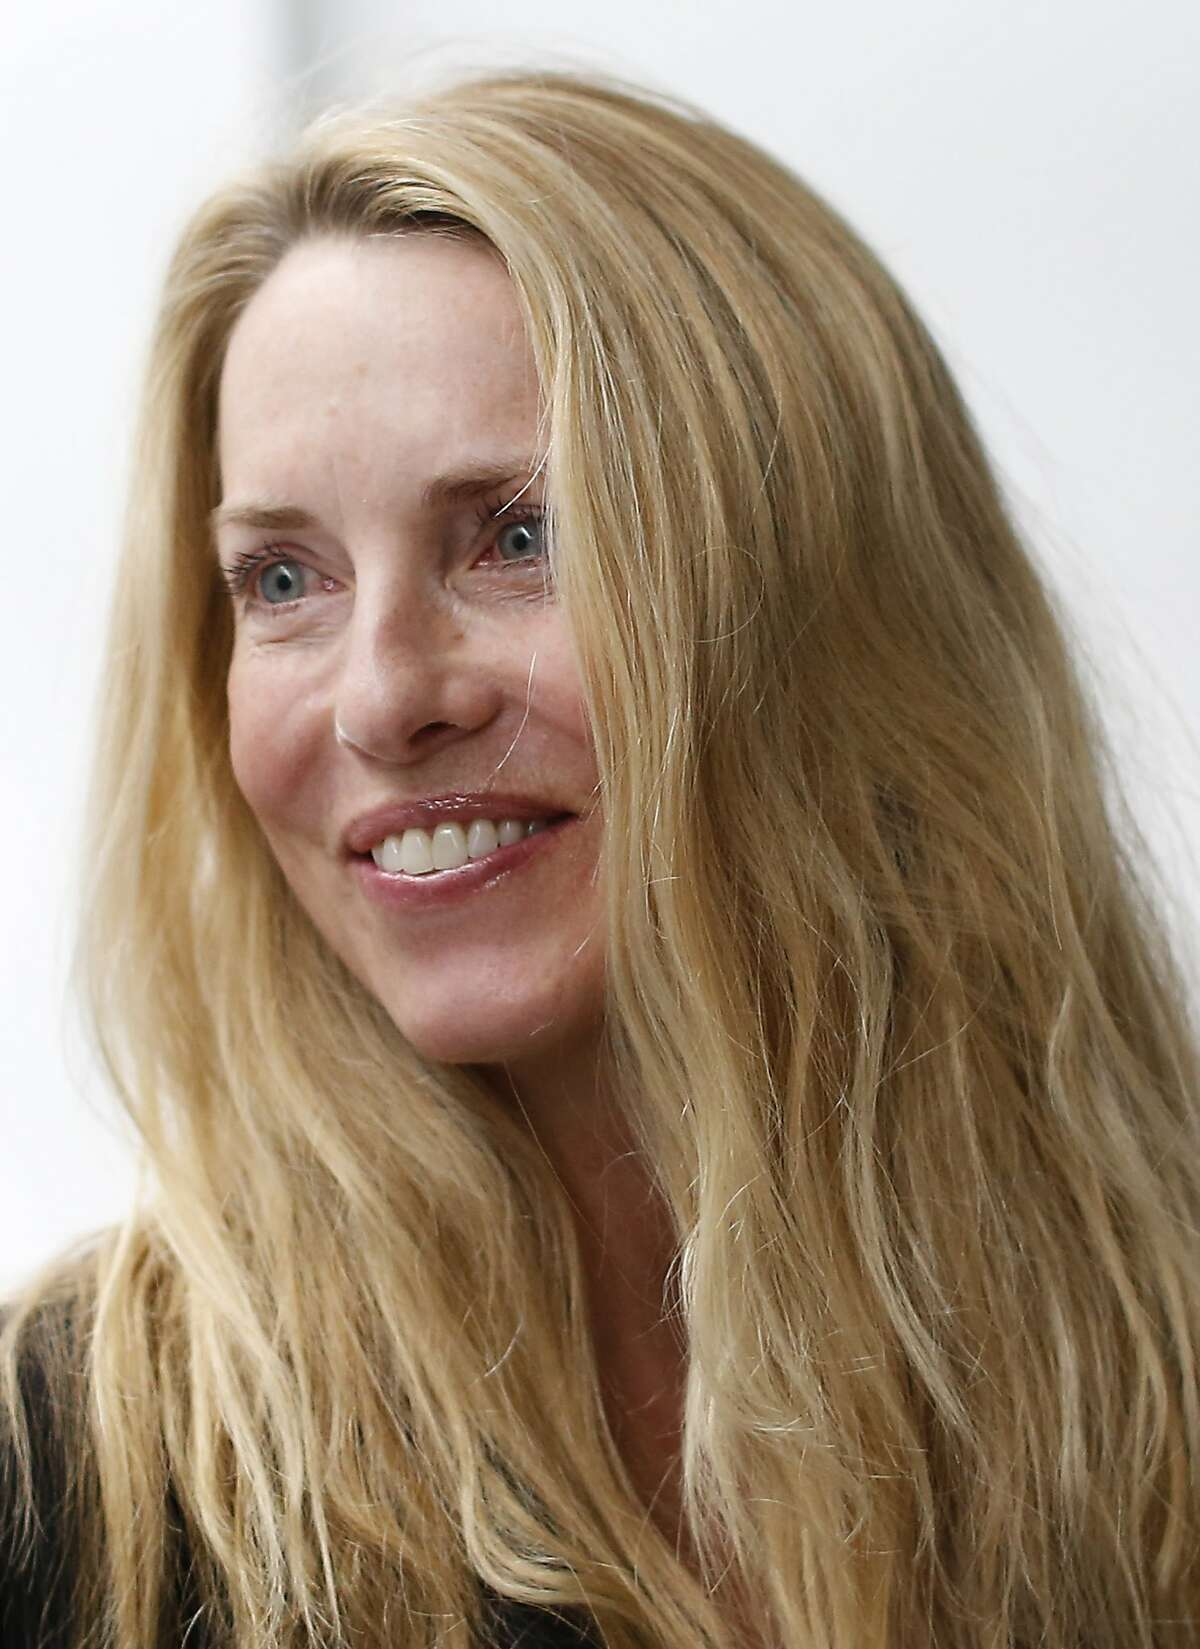 Laurene Powell Jobs, widow of late Apple founder and CEO Steve Jobs, is seen among the crowd after an Apple special event at the Yerba Buena Center for the Arts on March 9, 2015 in San Francisco, California. Apple Inc. announced the new MacBook as well as more details on the much anticipated Apple Watch, the tech giant's entry into the rapidly growing wearable technology segment as well